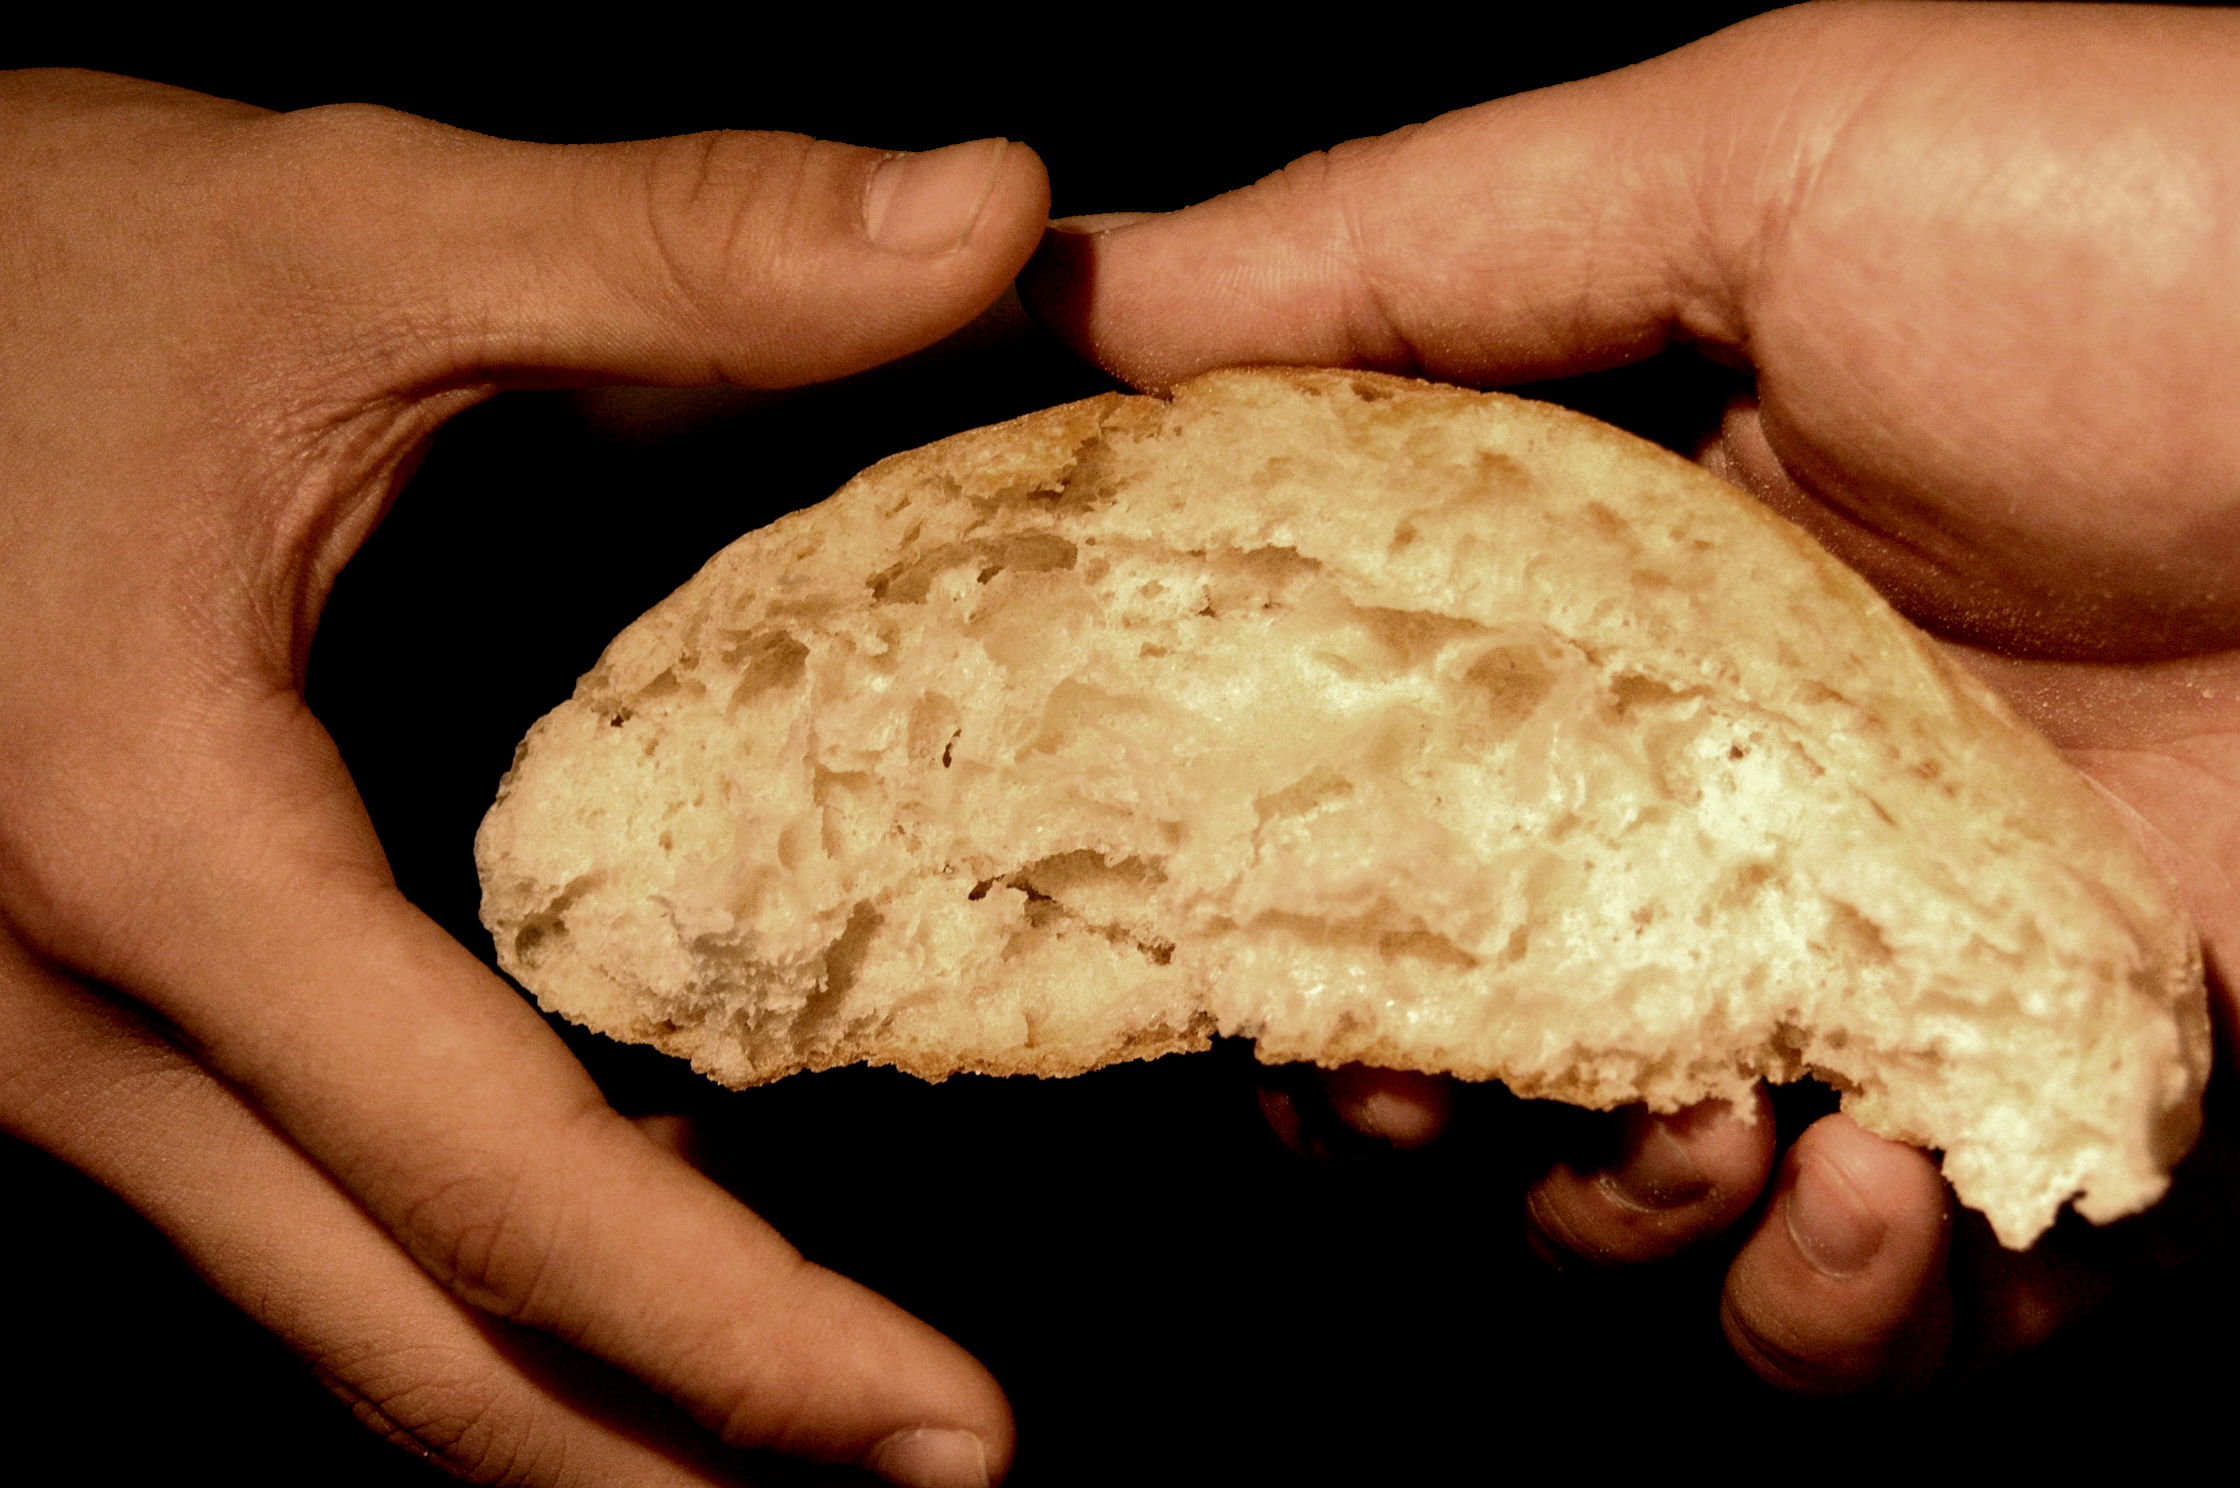 bread being passed from one person to another, just as Jesus fed the 5,000 in John 6